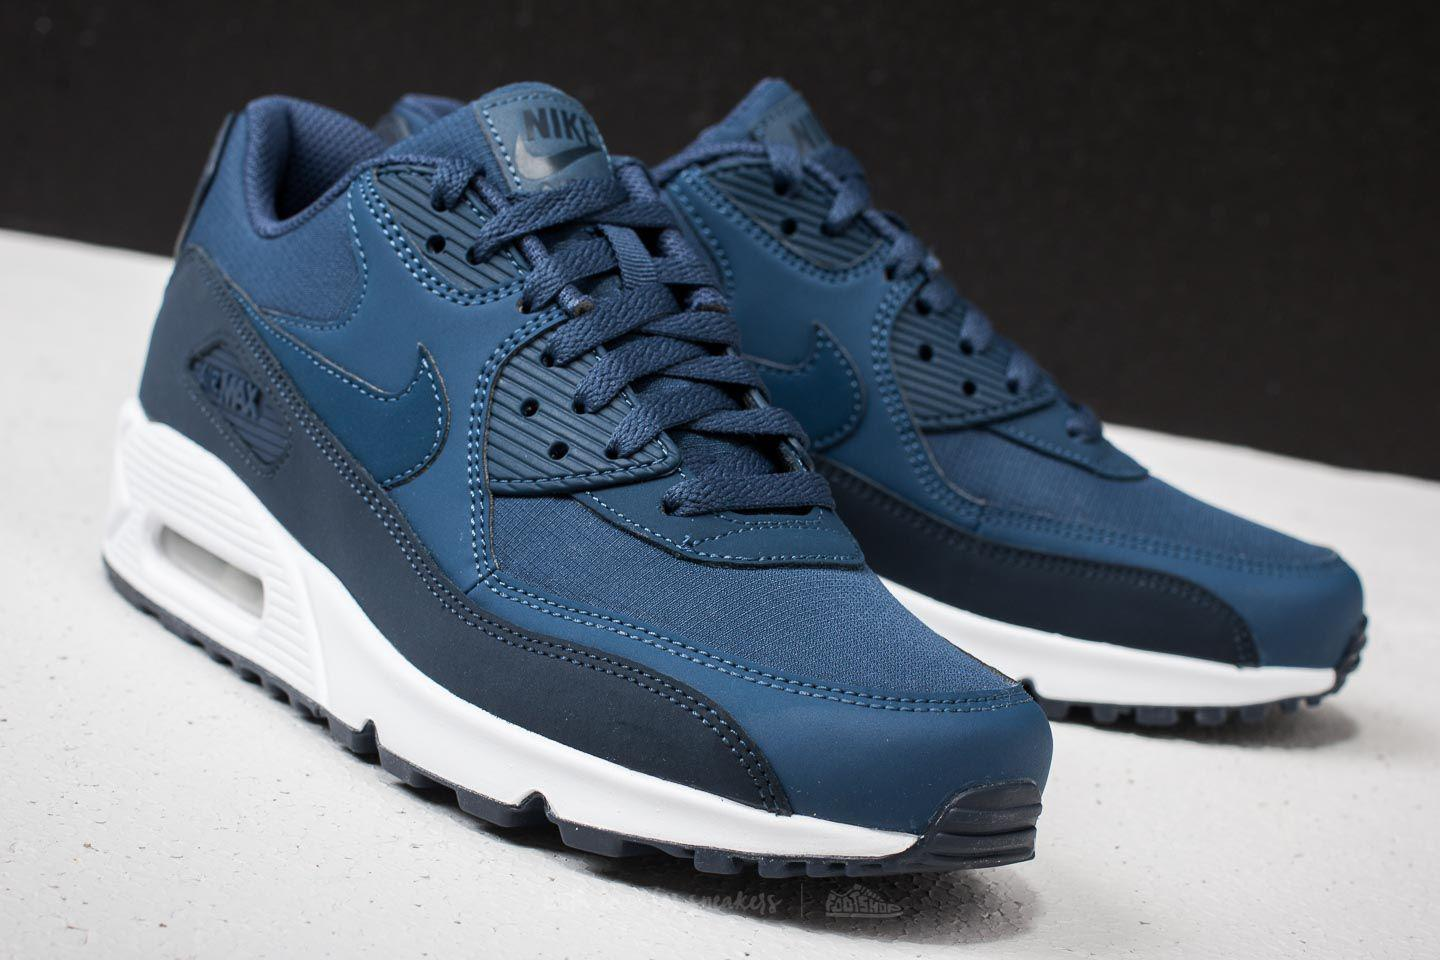 Lyst - Nike Air Max 90 Essential Obsidian  Navy-white in Blue for Men e0664263c